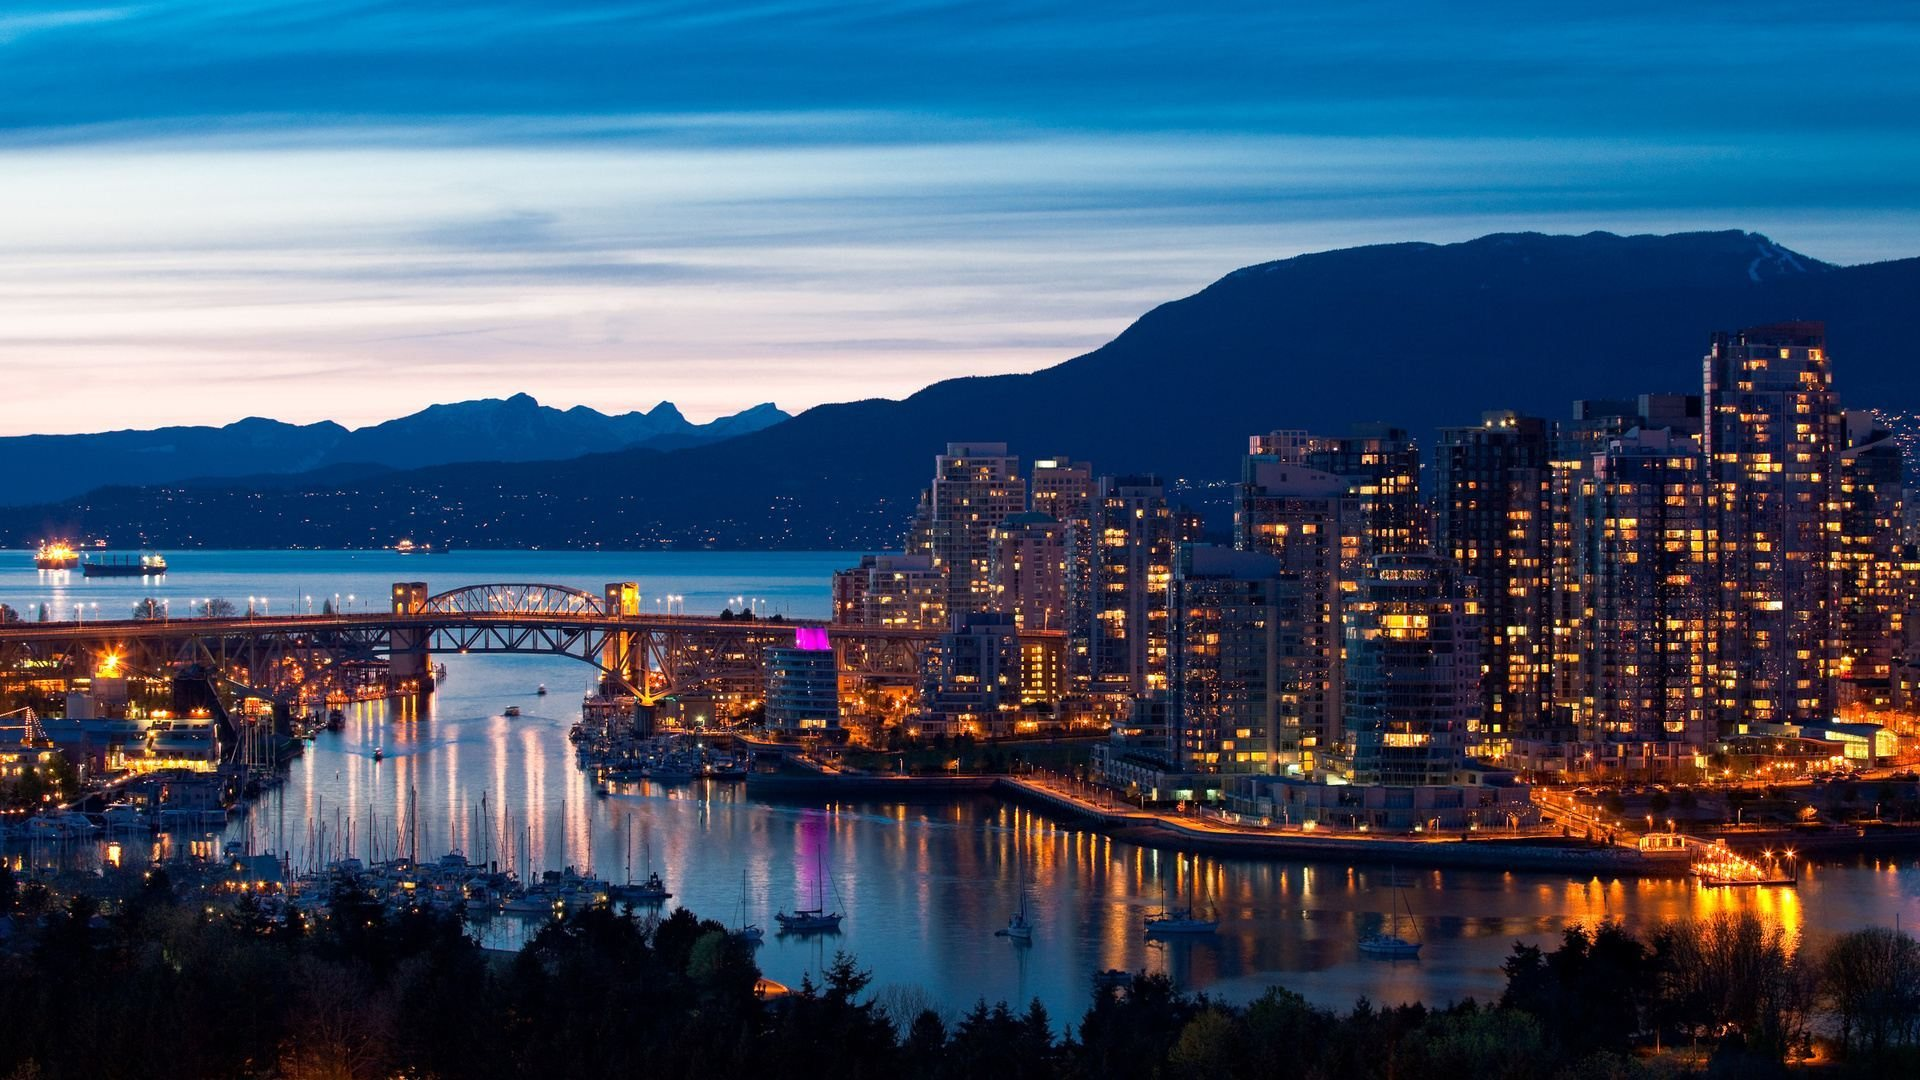 Wallpaper Vancouver Wallpaper Pictures Gallery